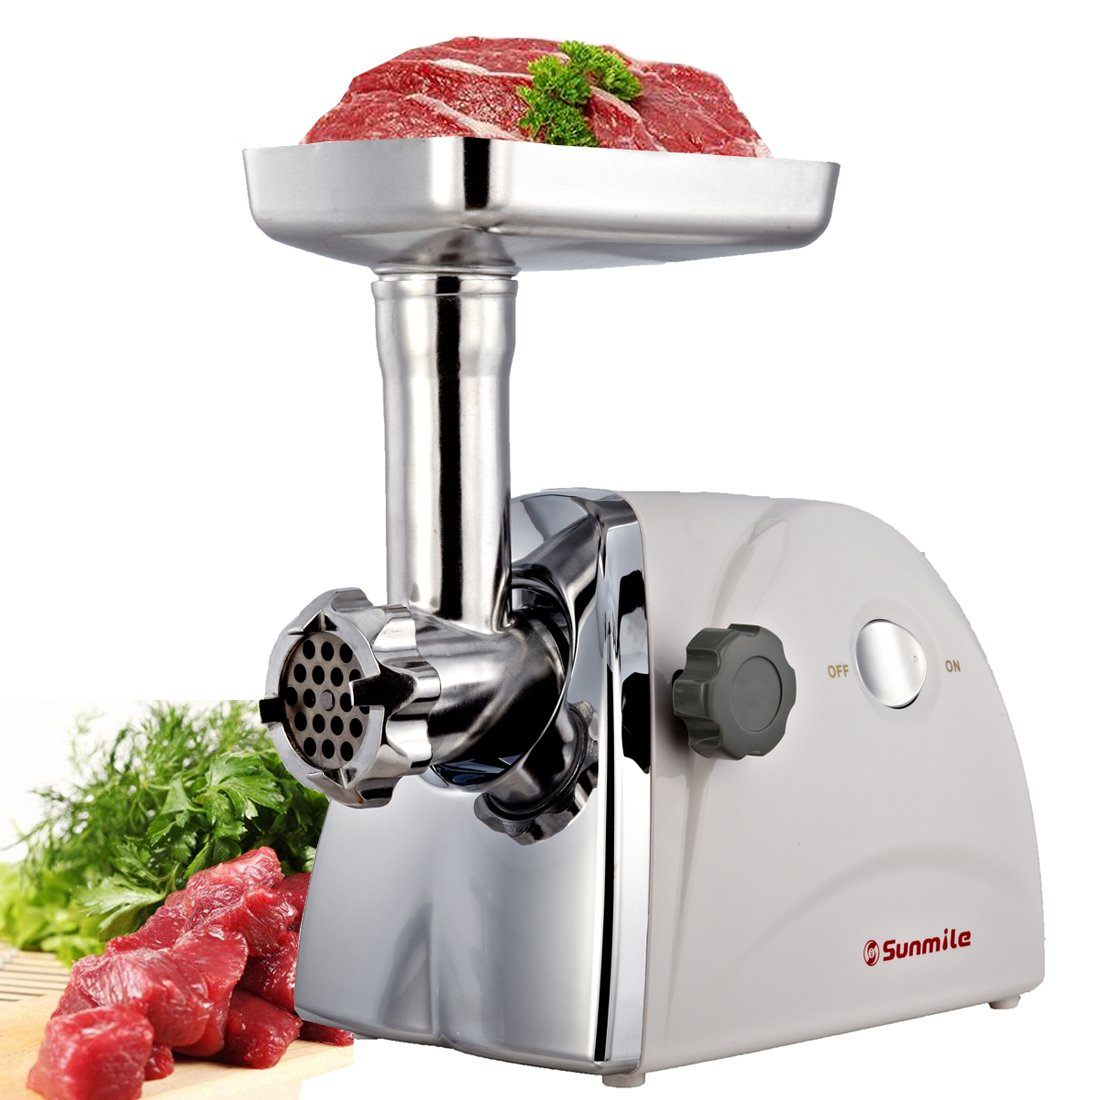 Sunmile SM-G31 Stainless Steel Electric Meat Grinder with Grinding Plates and Sausage Tubes 3pcs Stainless Steel Cutting Plates 3 Types Sausage Attachments